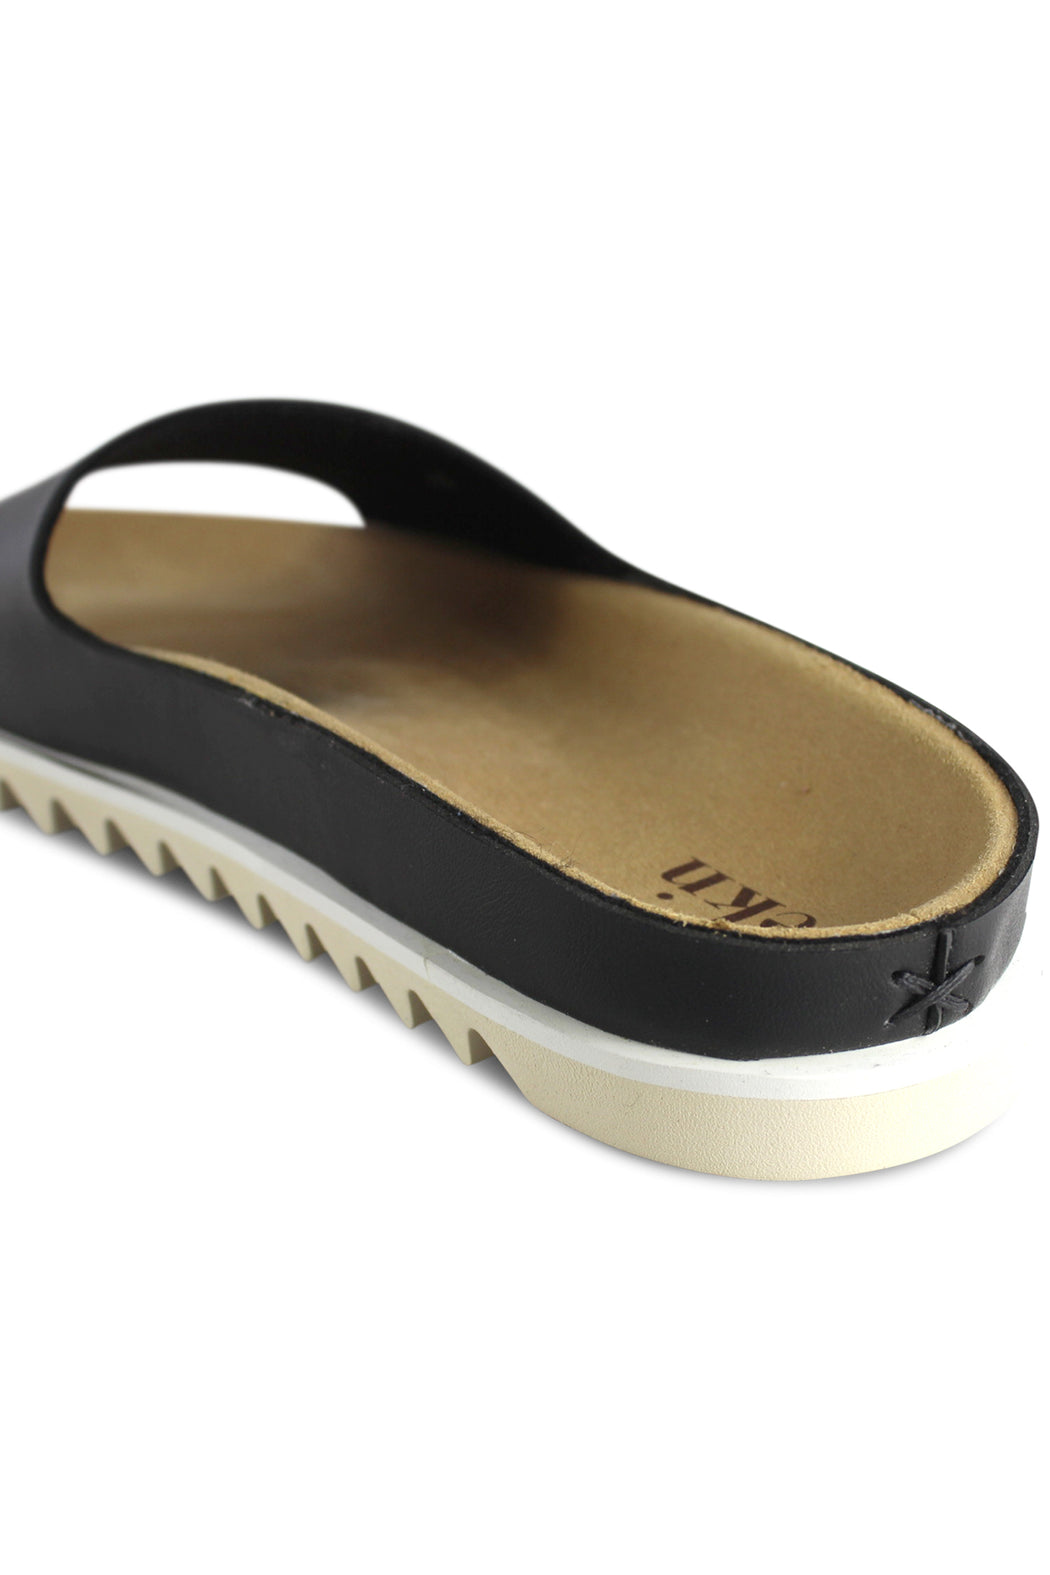 PALM SANDAL black vegan